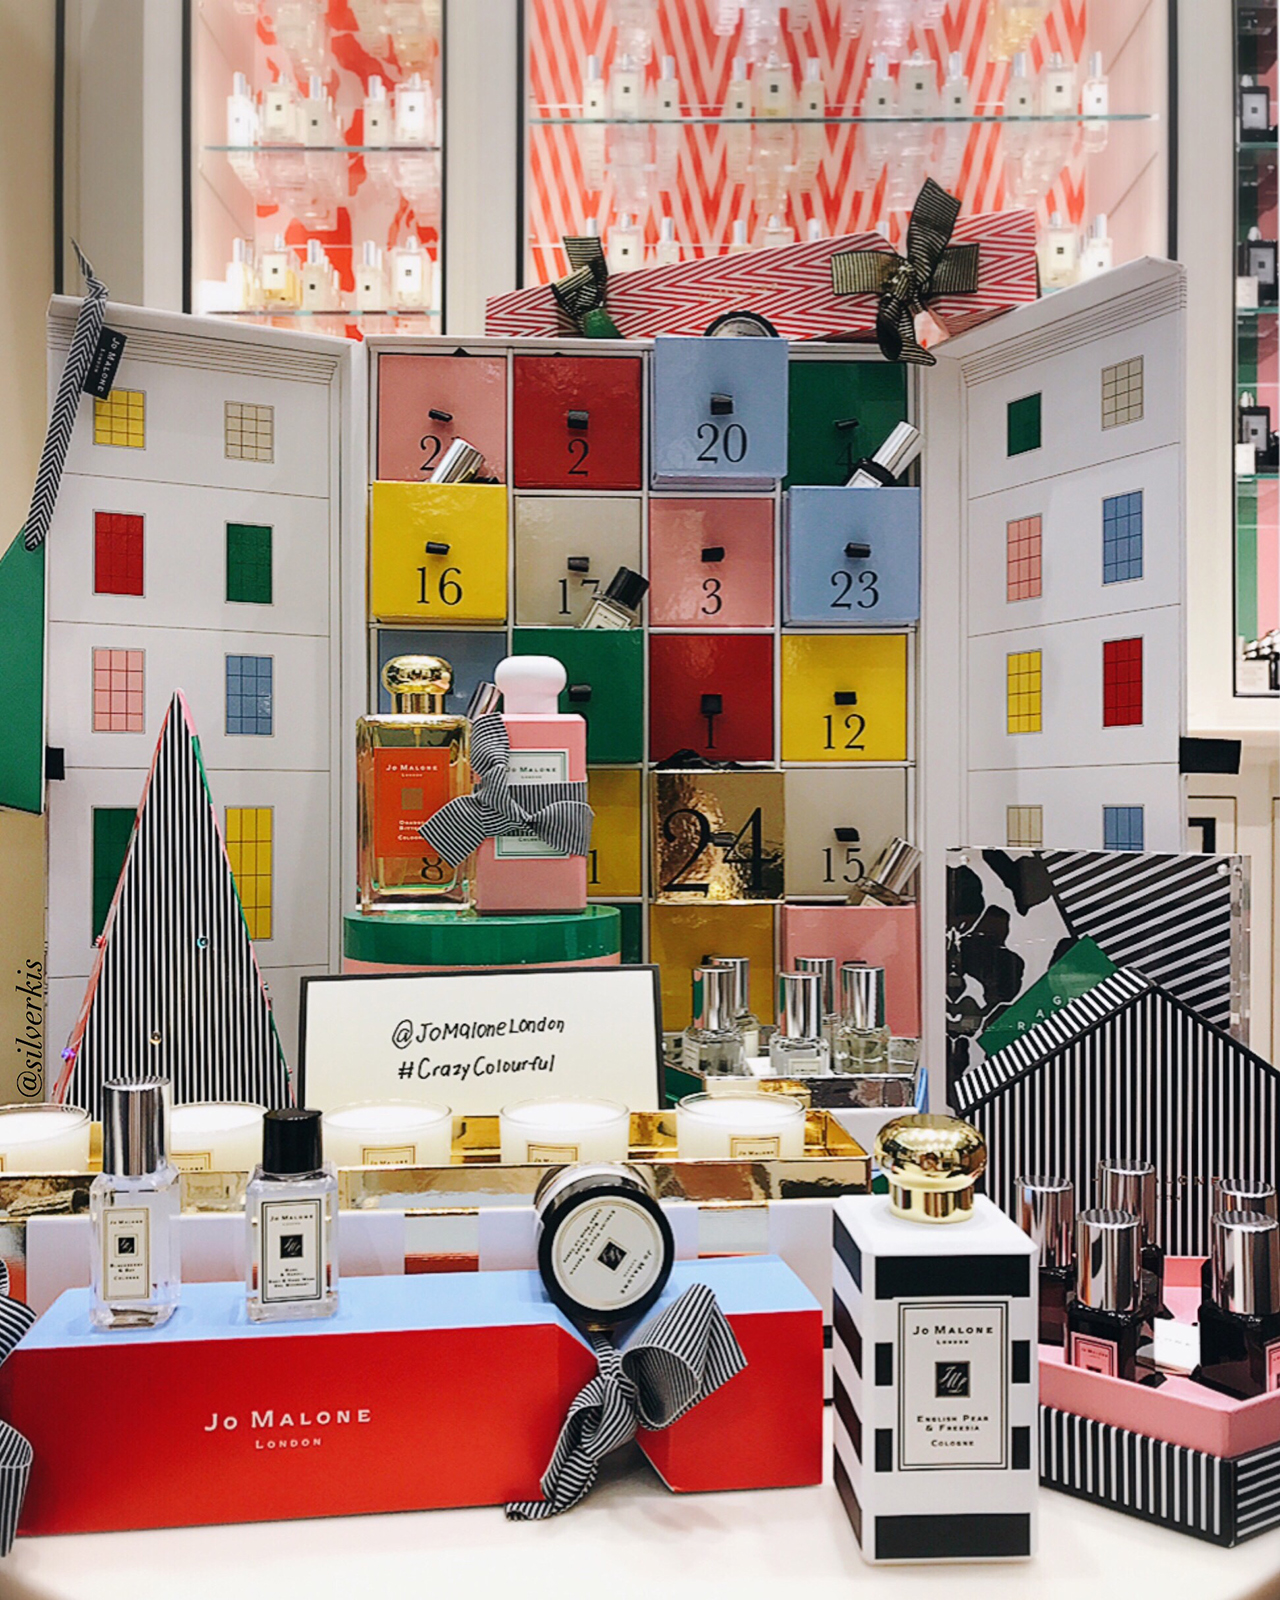 Jo Malone Crazy Colourful Christmas